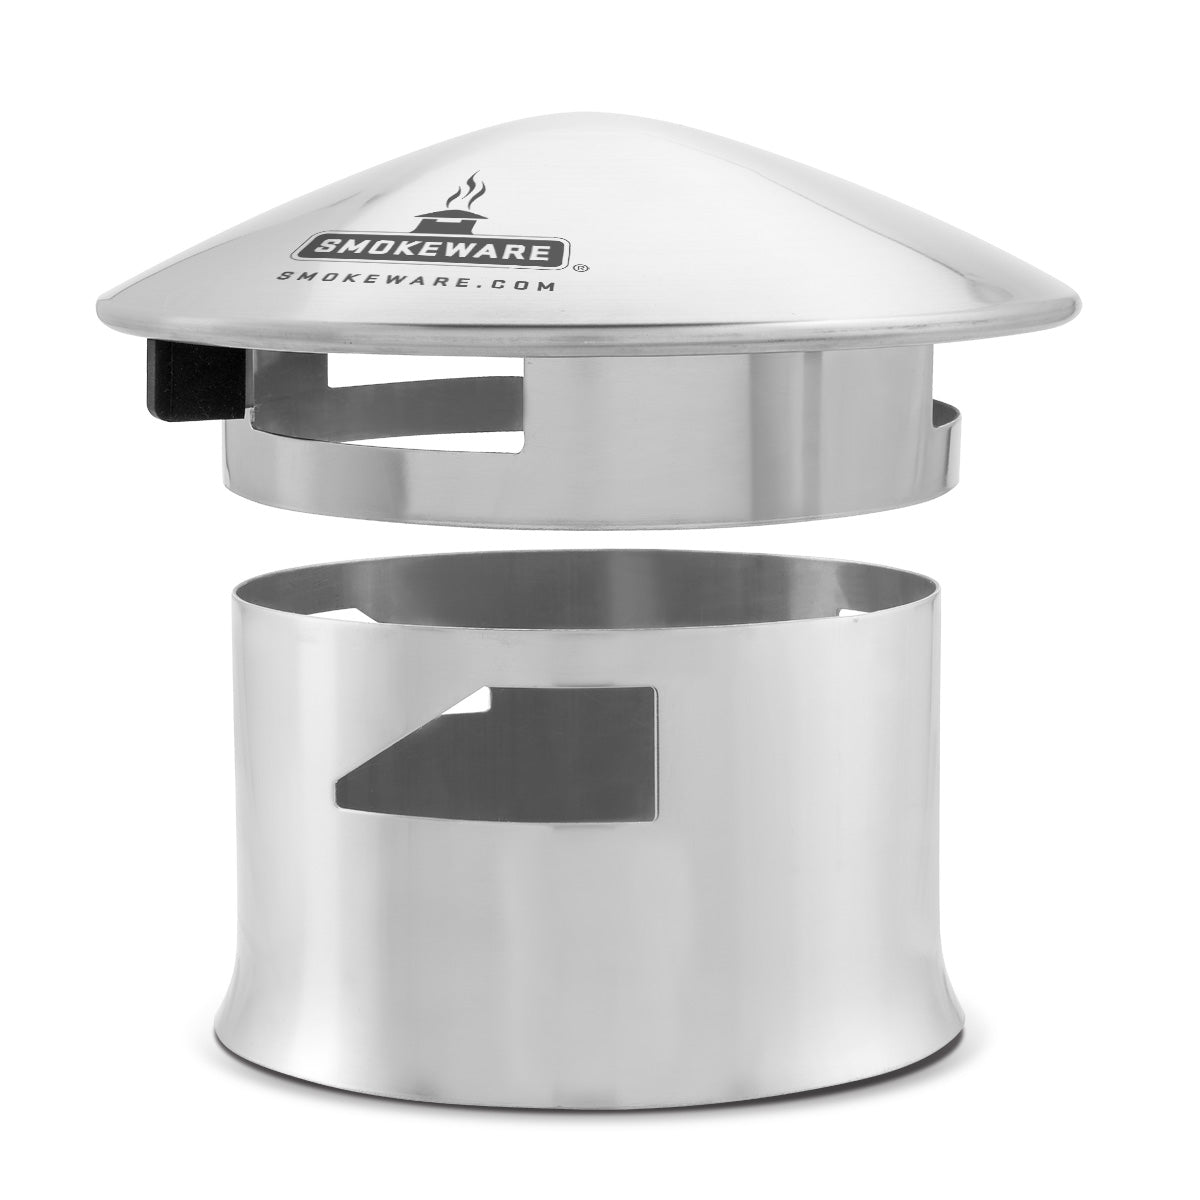 Chimney Cap For Kj Smokeware Grilling Accessories